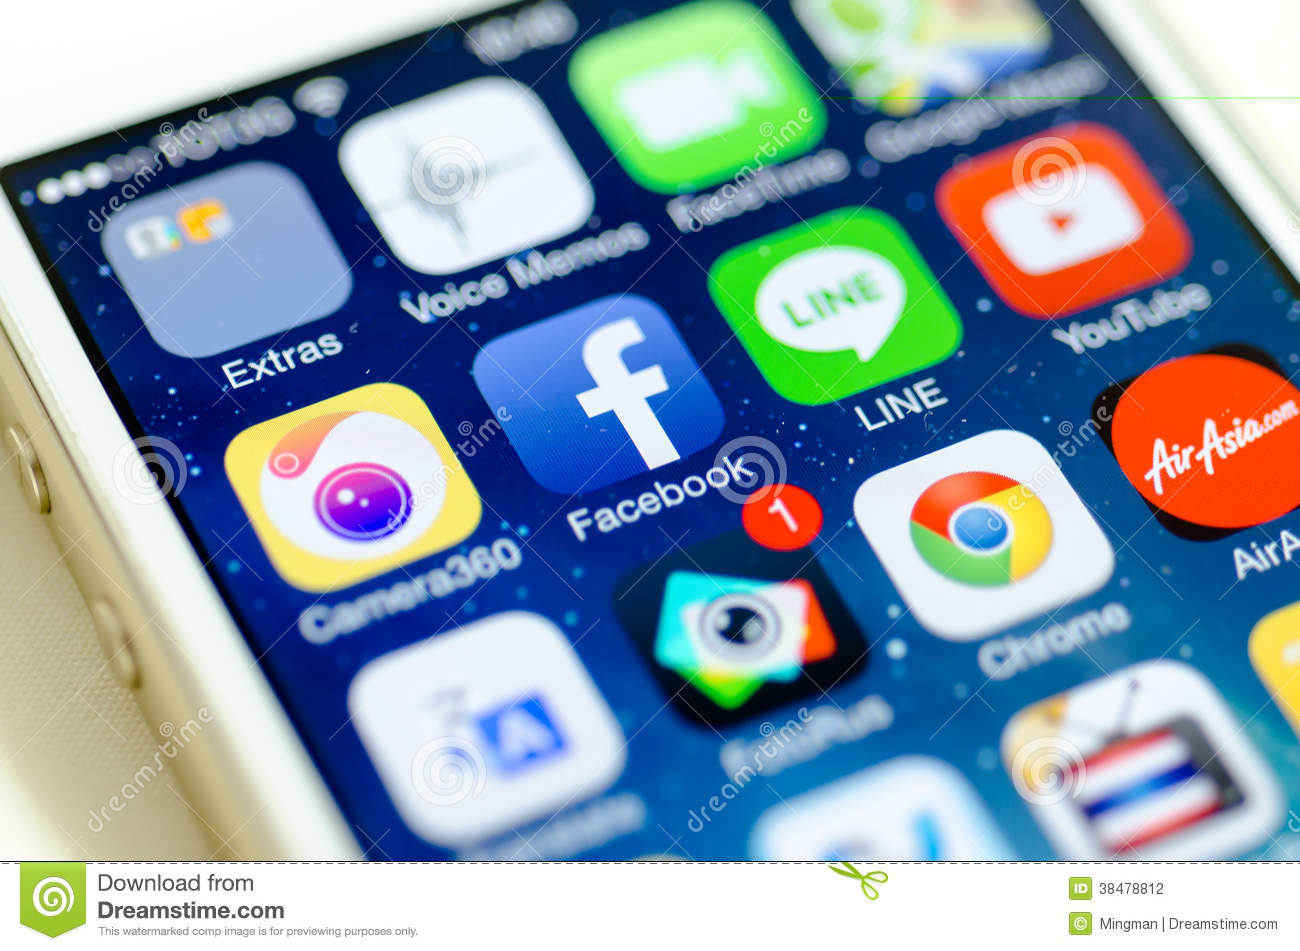 apps spain social networking iphone